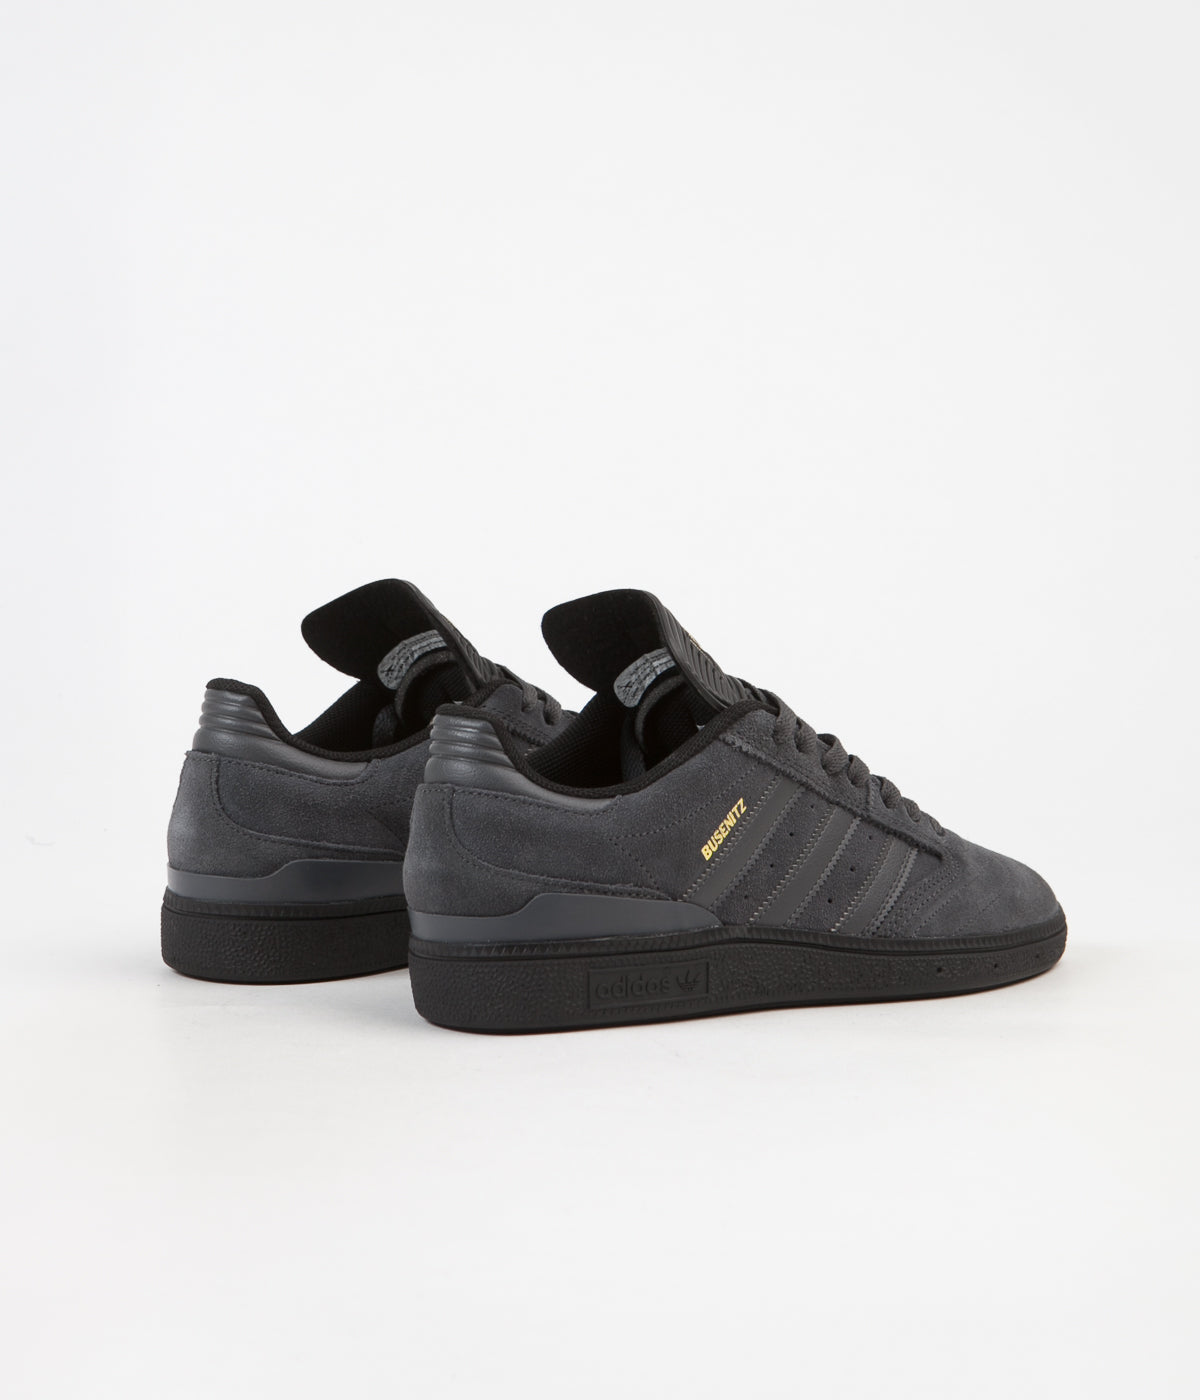 newest b49b9 4d471 ... Adidas Busenitz Pro Shoes - Core Black  Solid Grey  Gold Foil ...